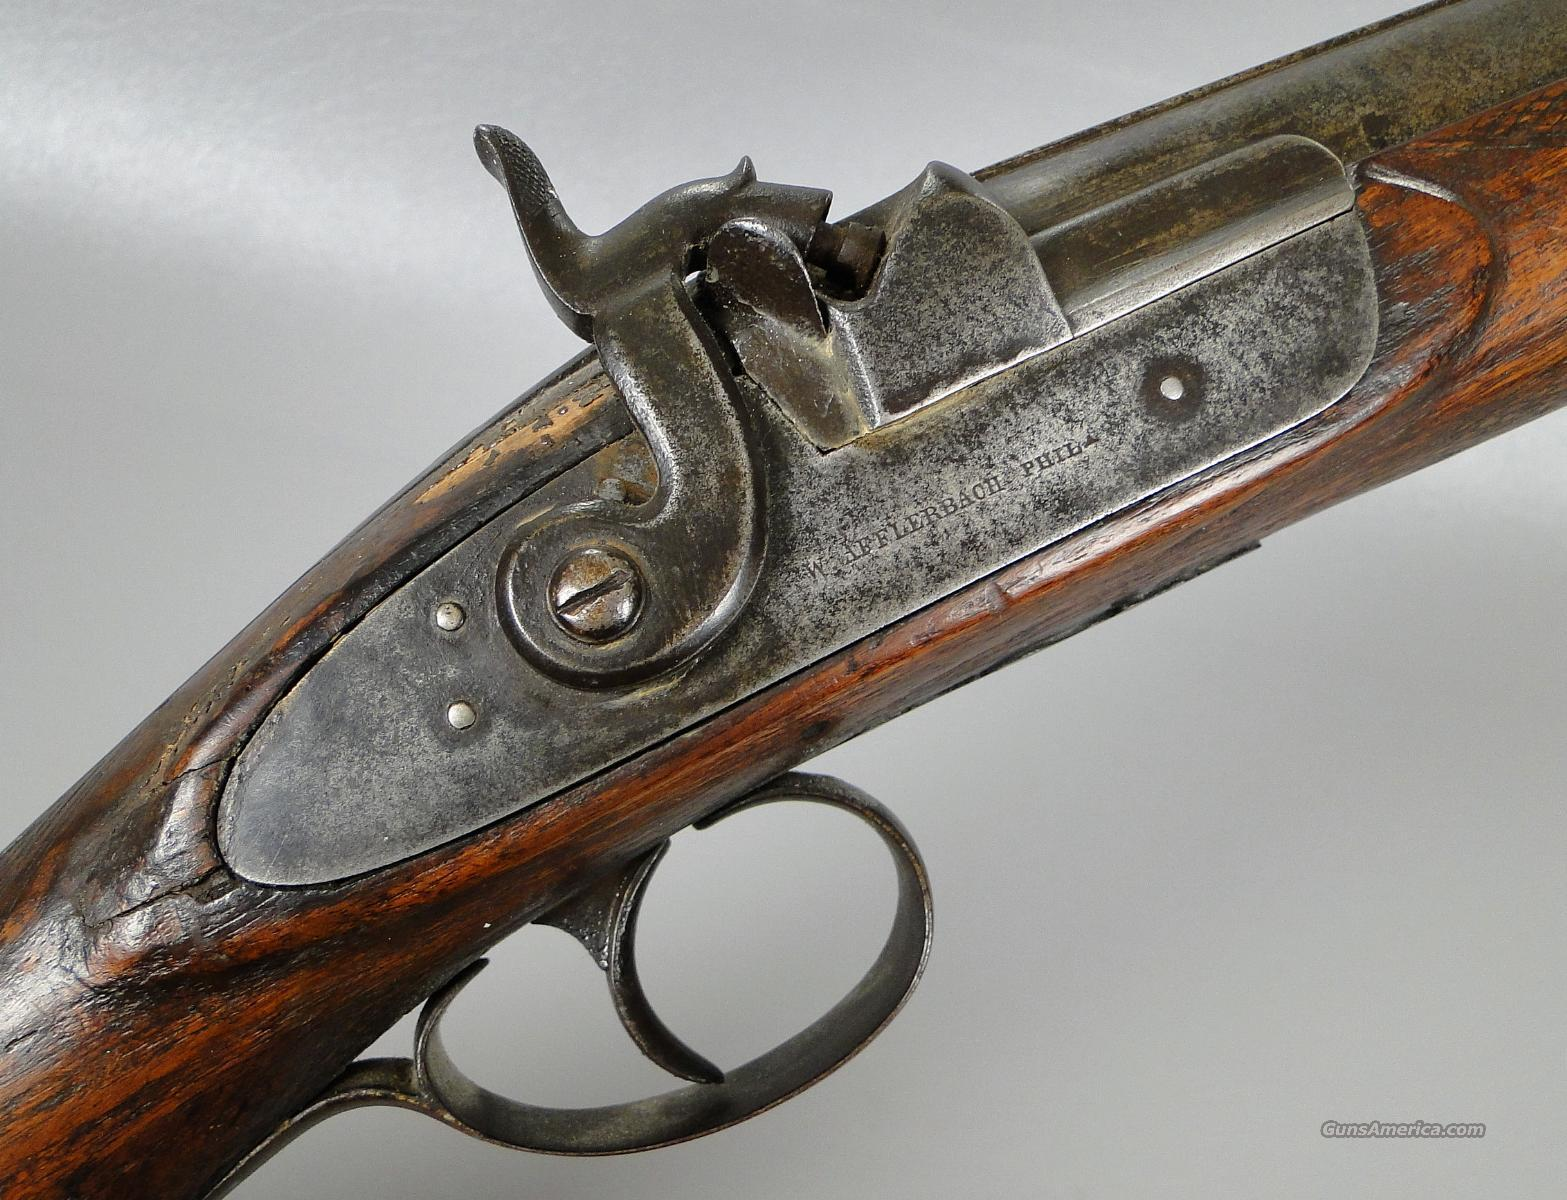 Antique Philadelphia 8 Gauge Damascus Barrel Muzzleloading Shotgun  Guns > Shotguns > Muzzleloading Pre-1899 Shotguns